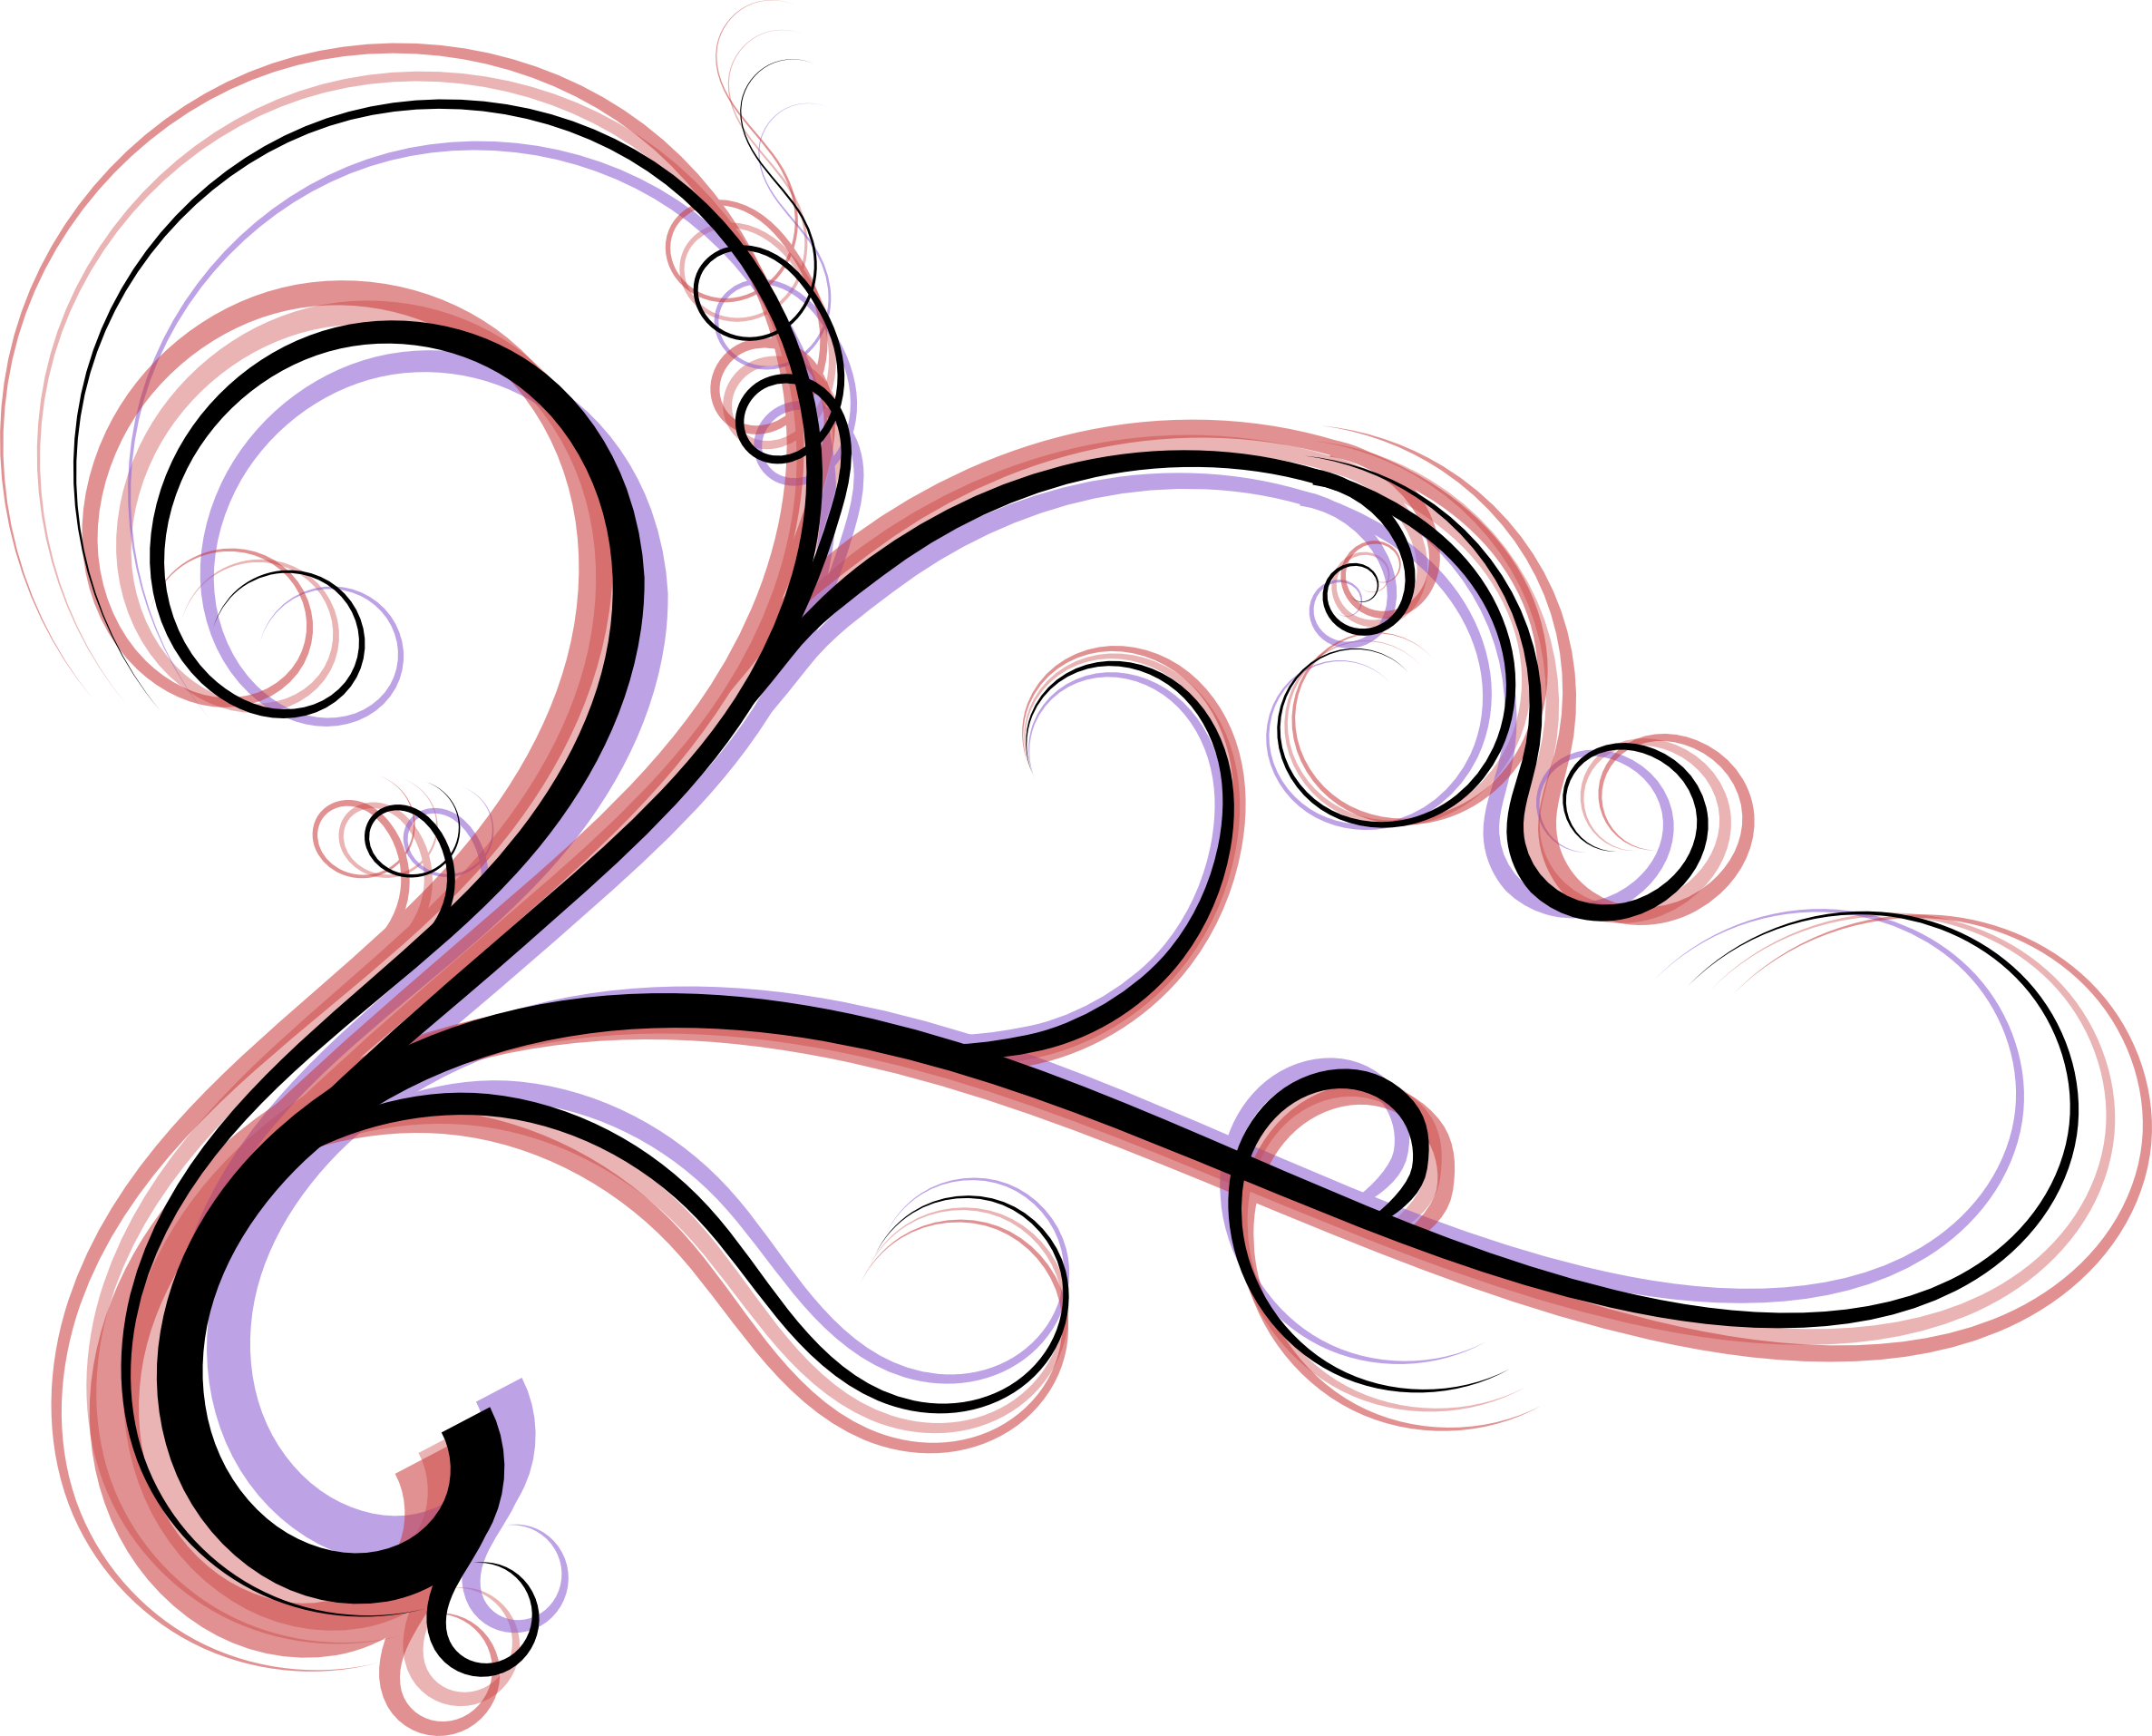 How To Add Color Simple Decorative Ornament Svg By Pechblenda On Deviantart